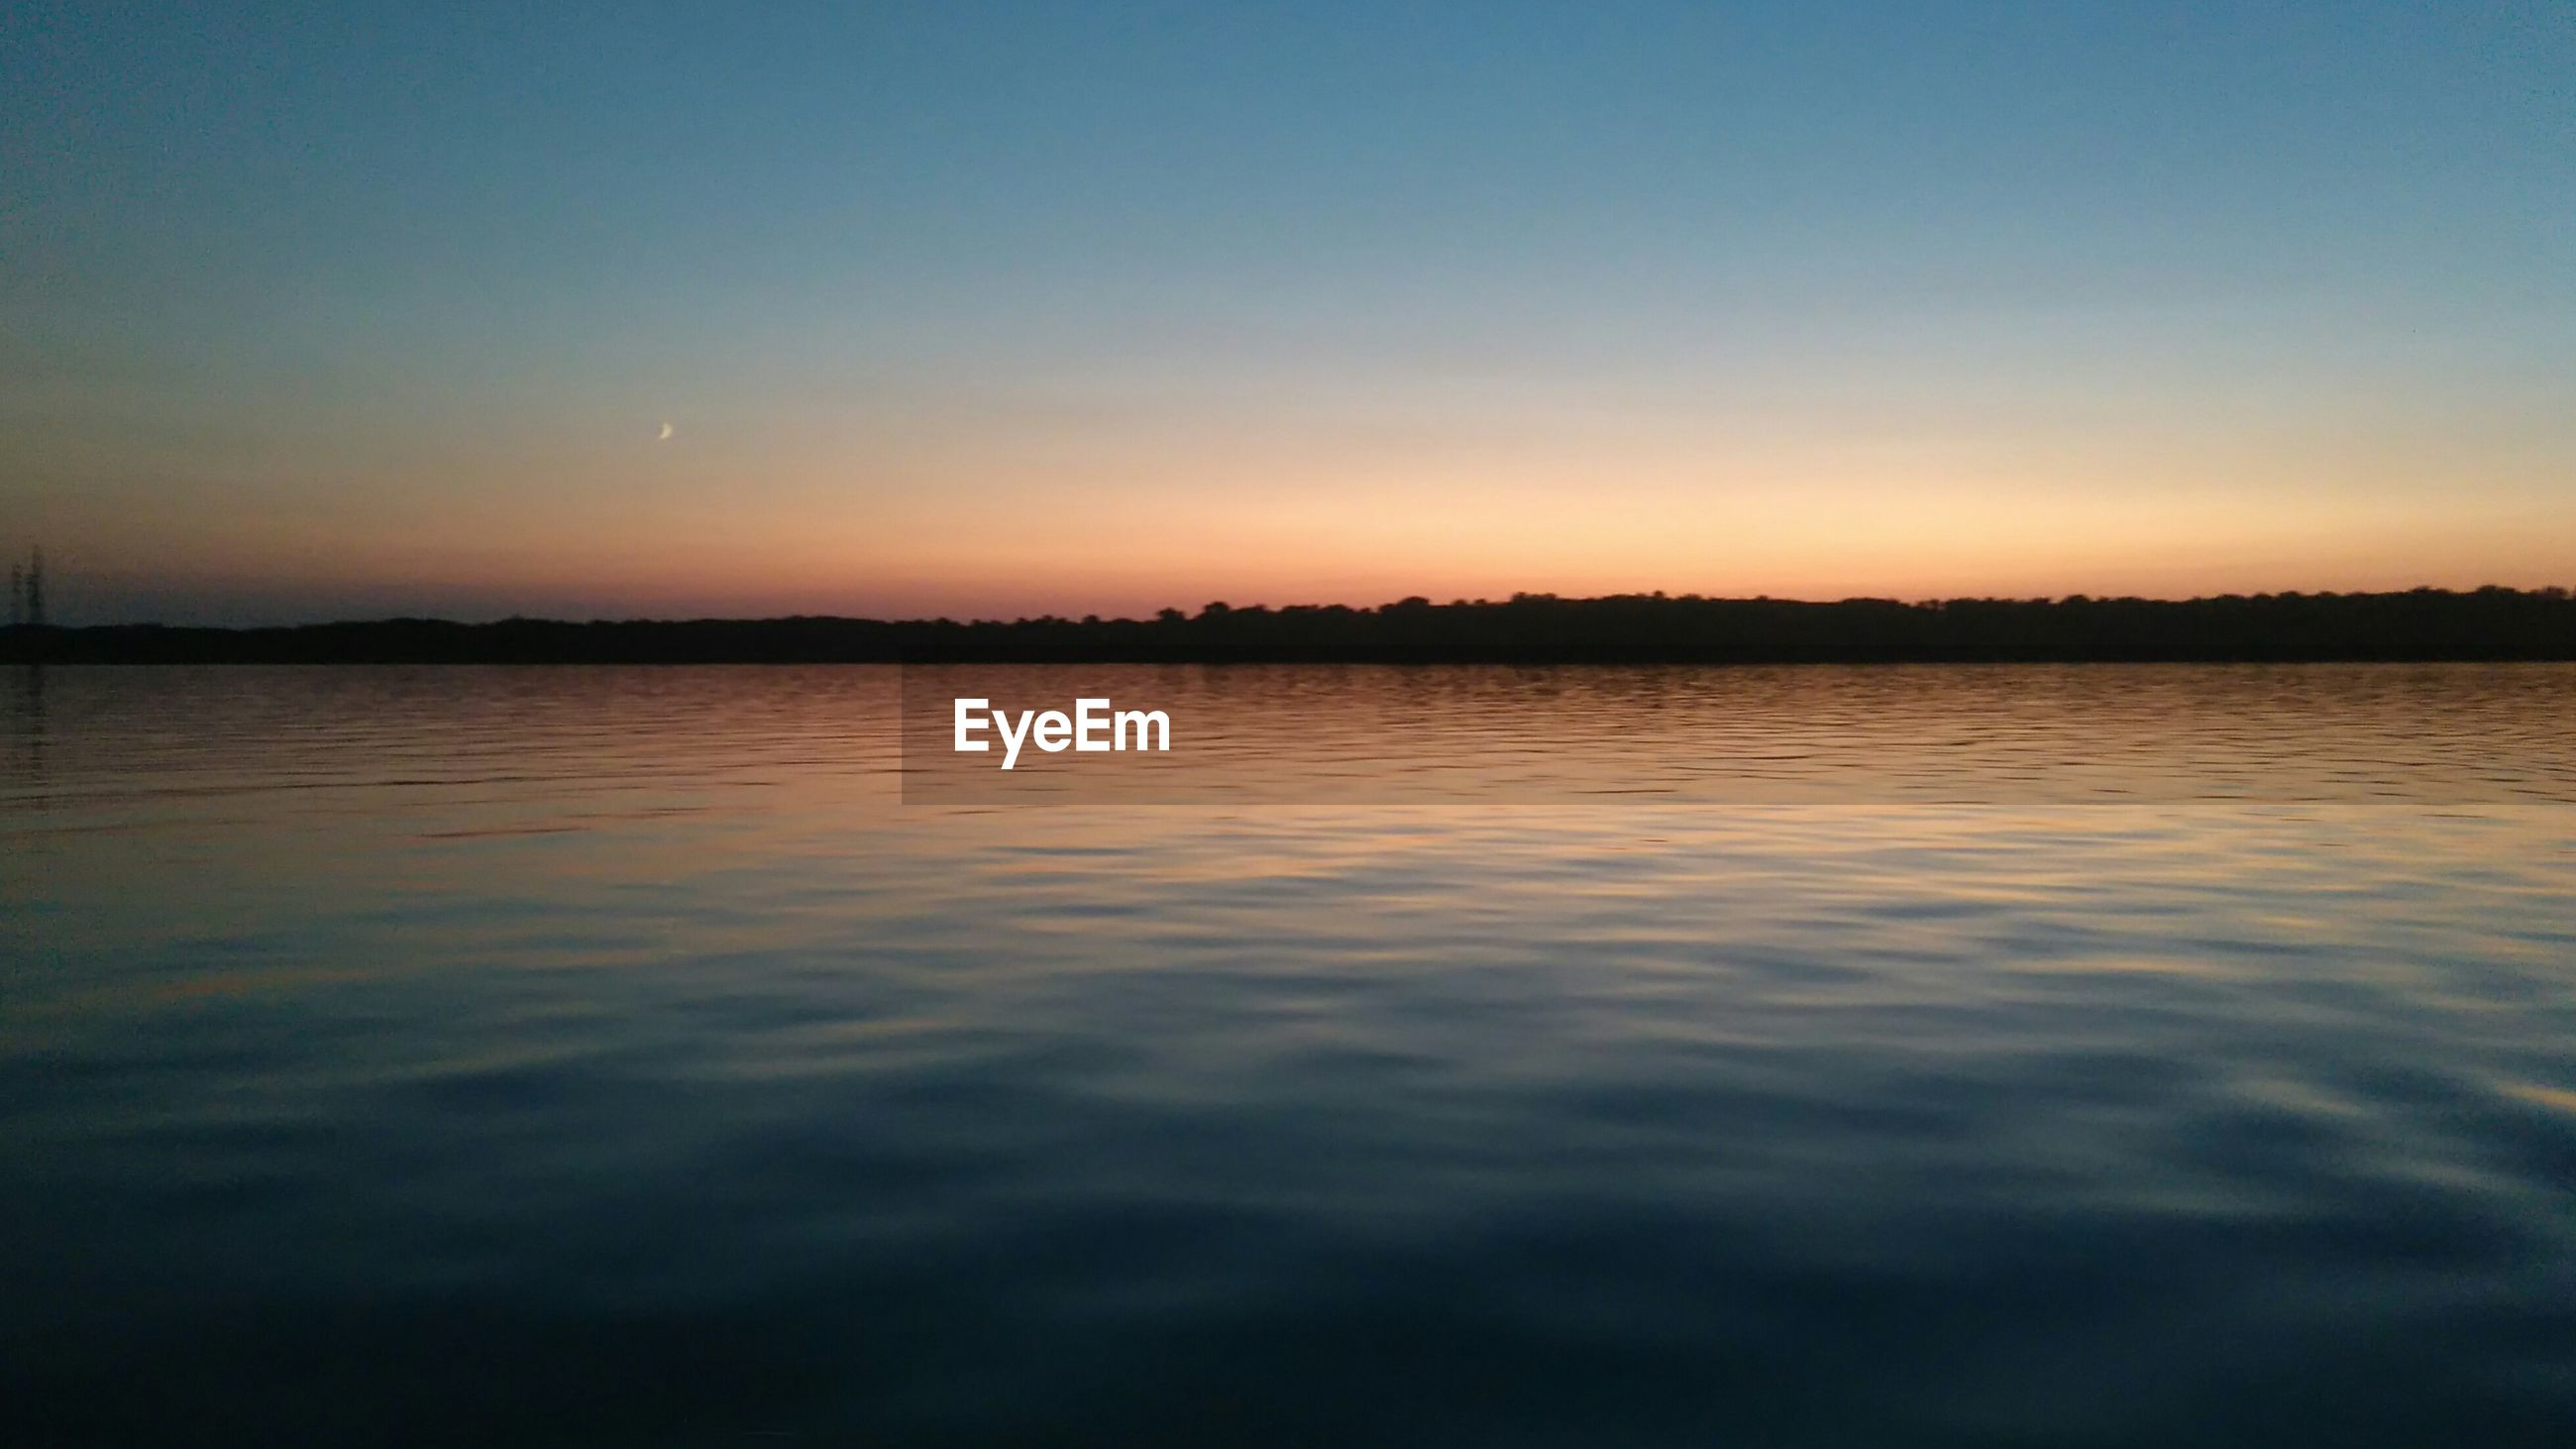 SCENIC VIEW OF CALM LAKE AT SUNSET